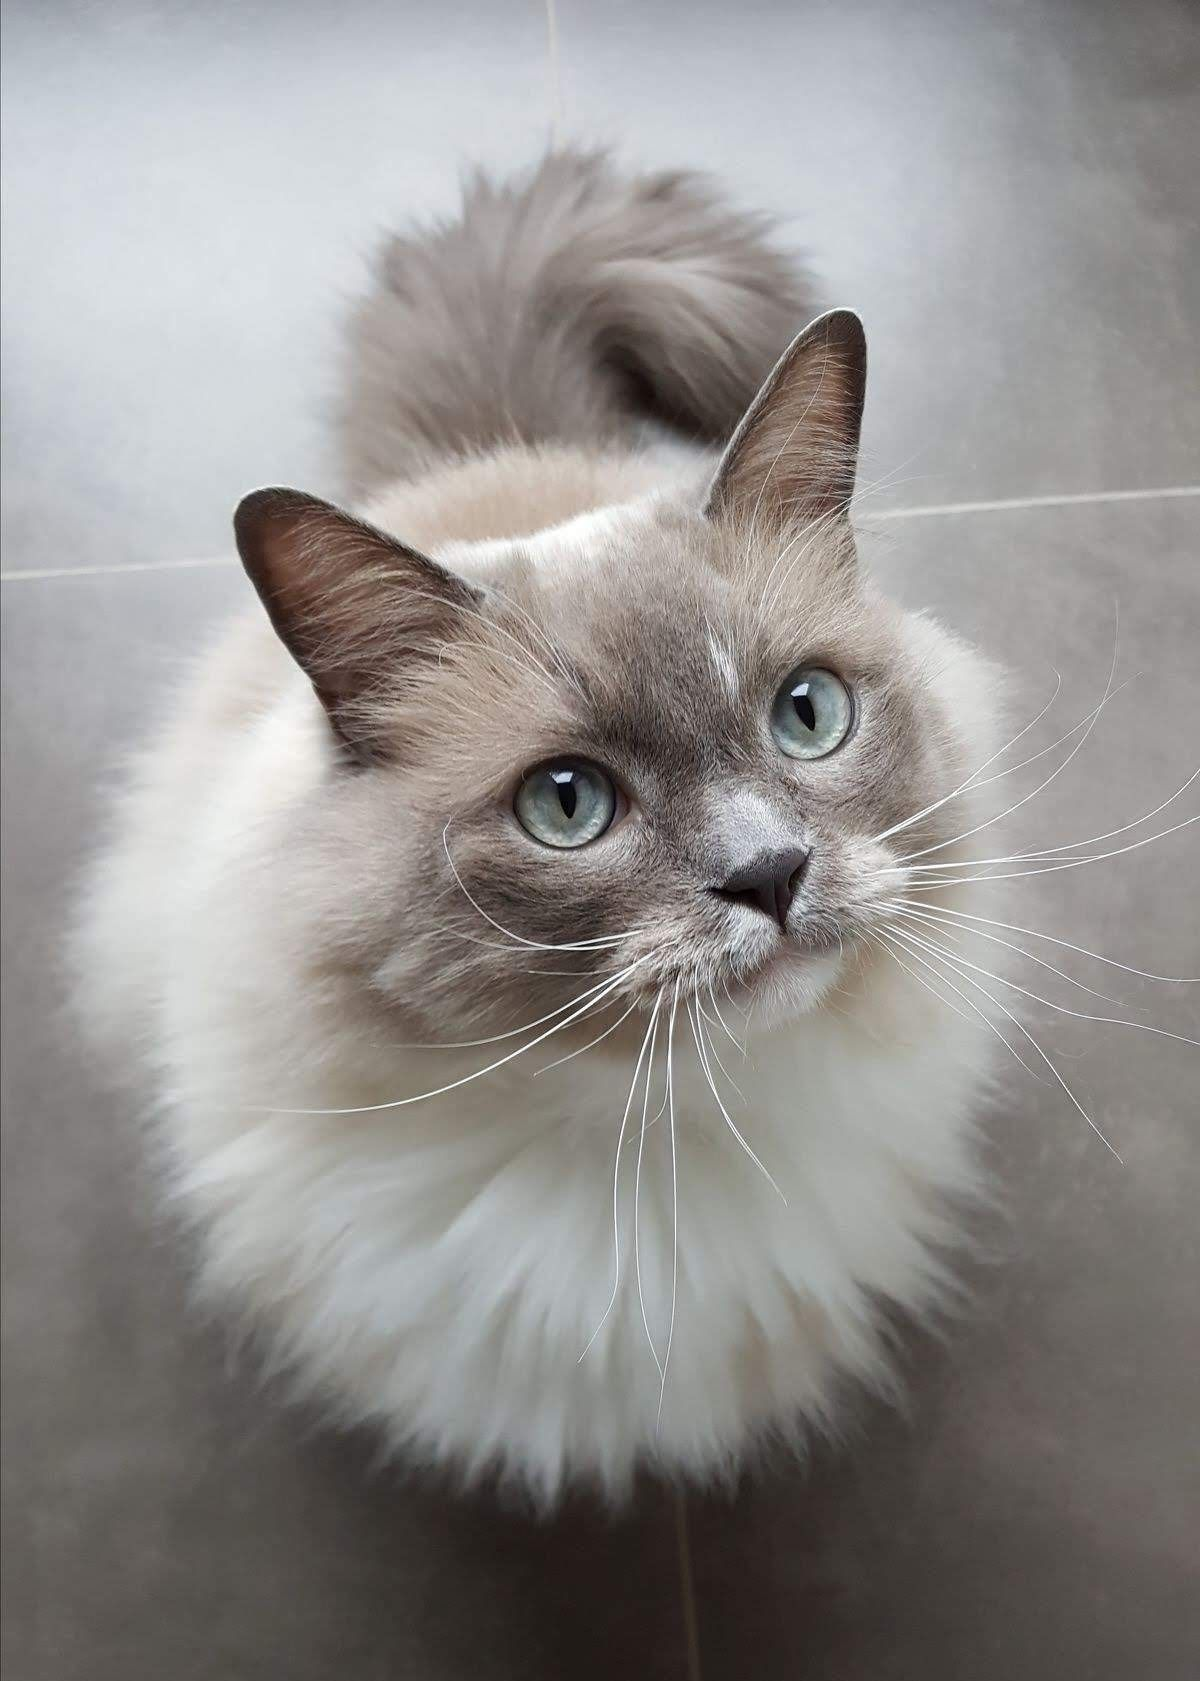 misskatieclarkson All cat breeds, Pretty cats, Cute cats